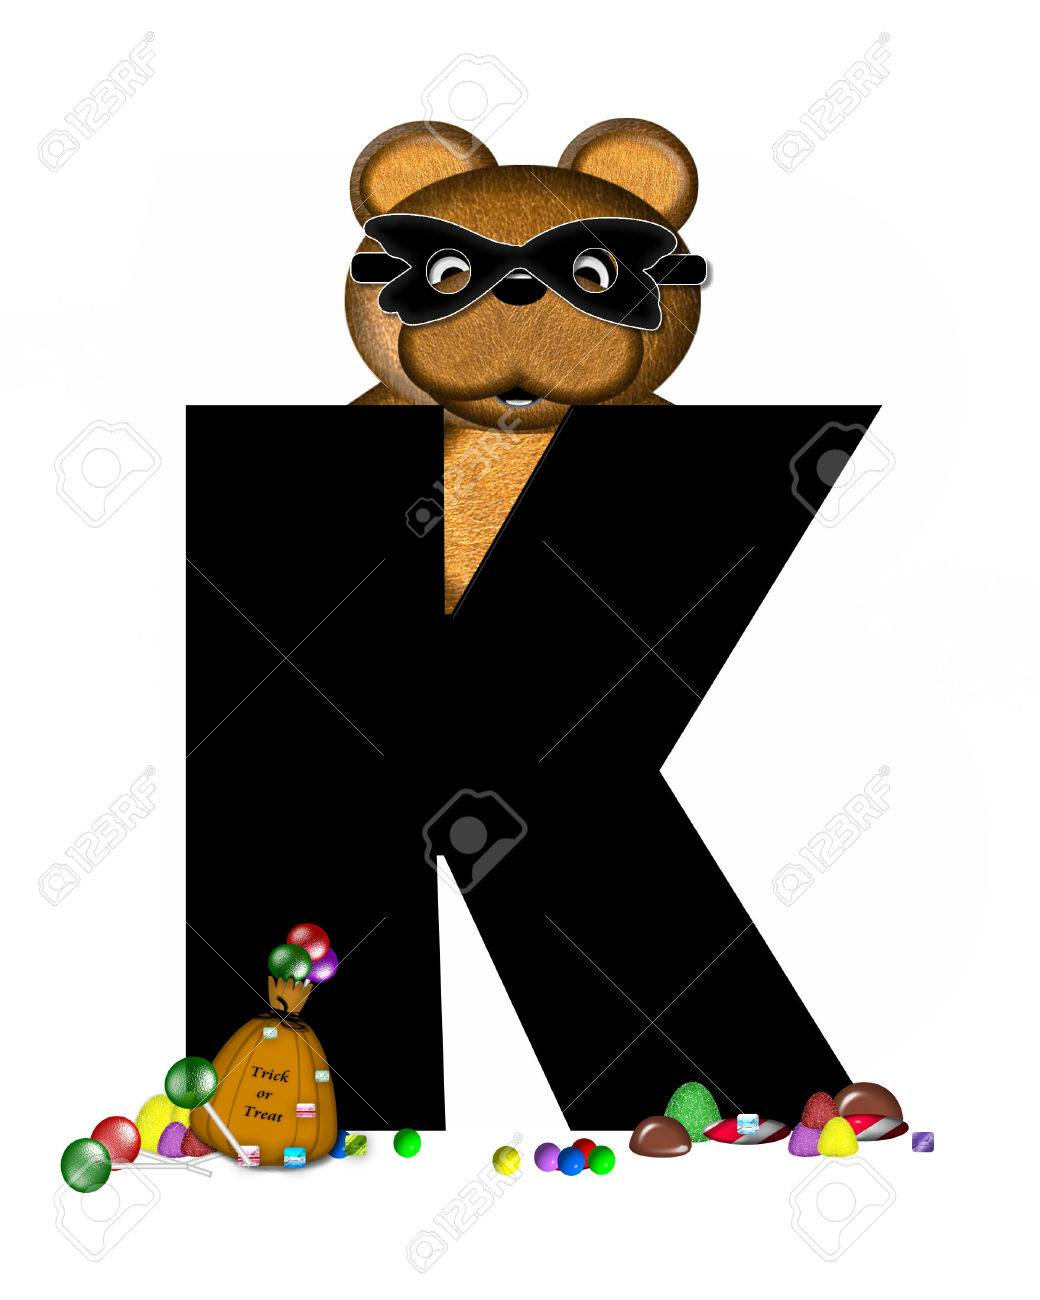 stock photo the letter k in the alphabet set teddy halloween treats is black and is decorated with cute brown teddy bear bear is masked and holding a